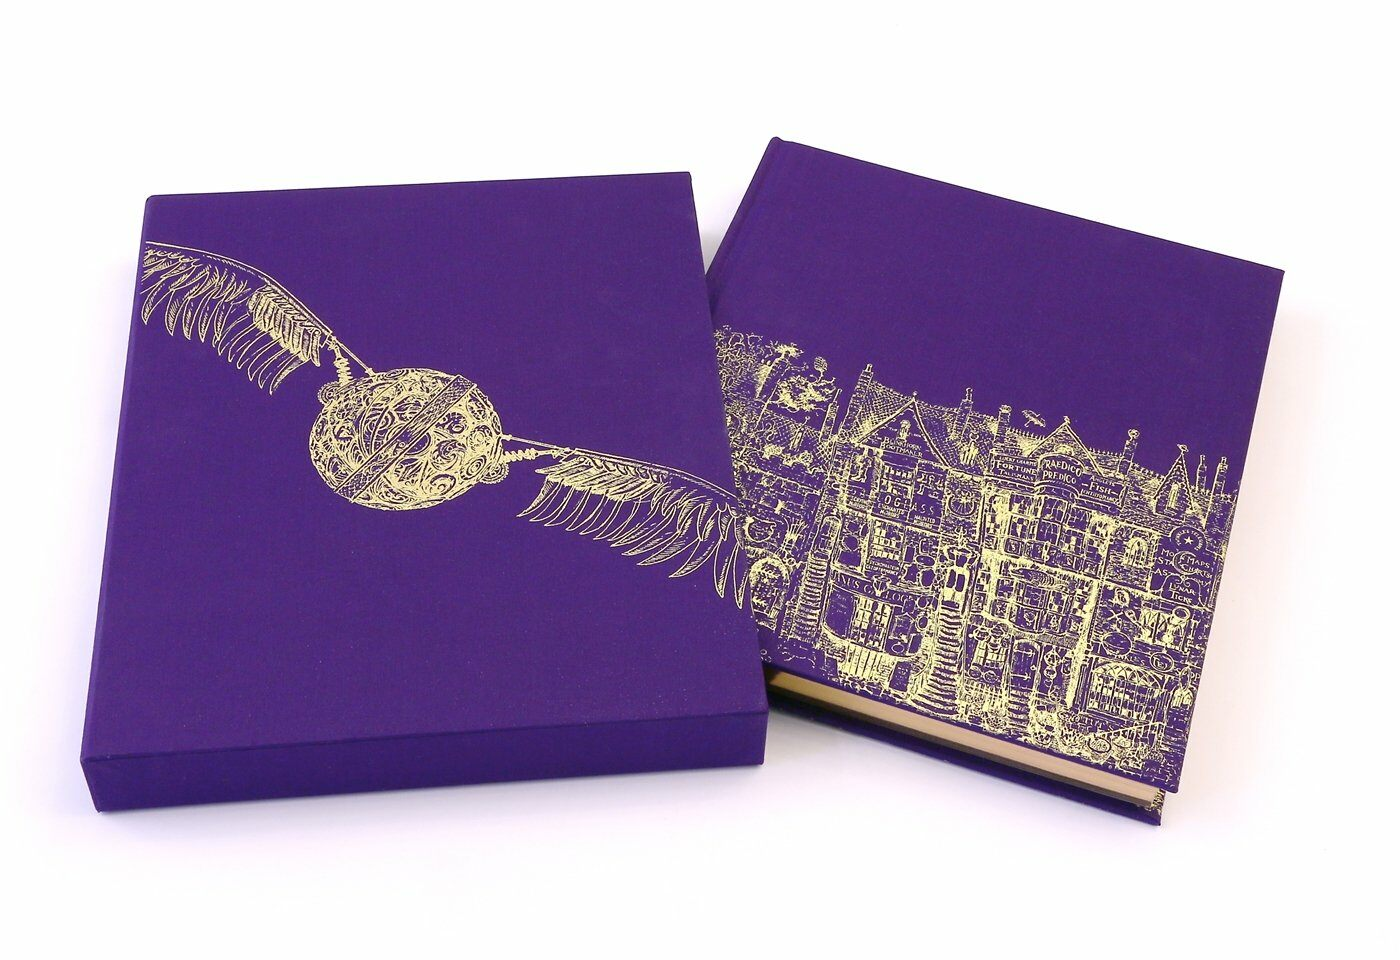 Harry Potter and the Philosophers Stone : Deluxe Illustrated Slipcase Edition (Hardcover)